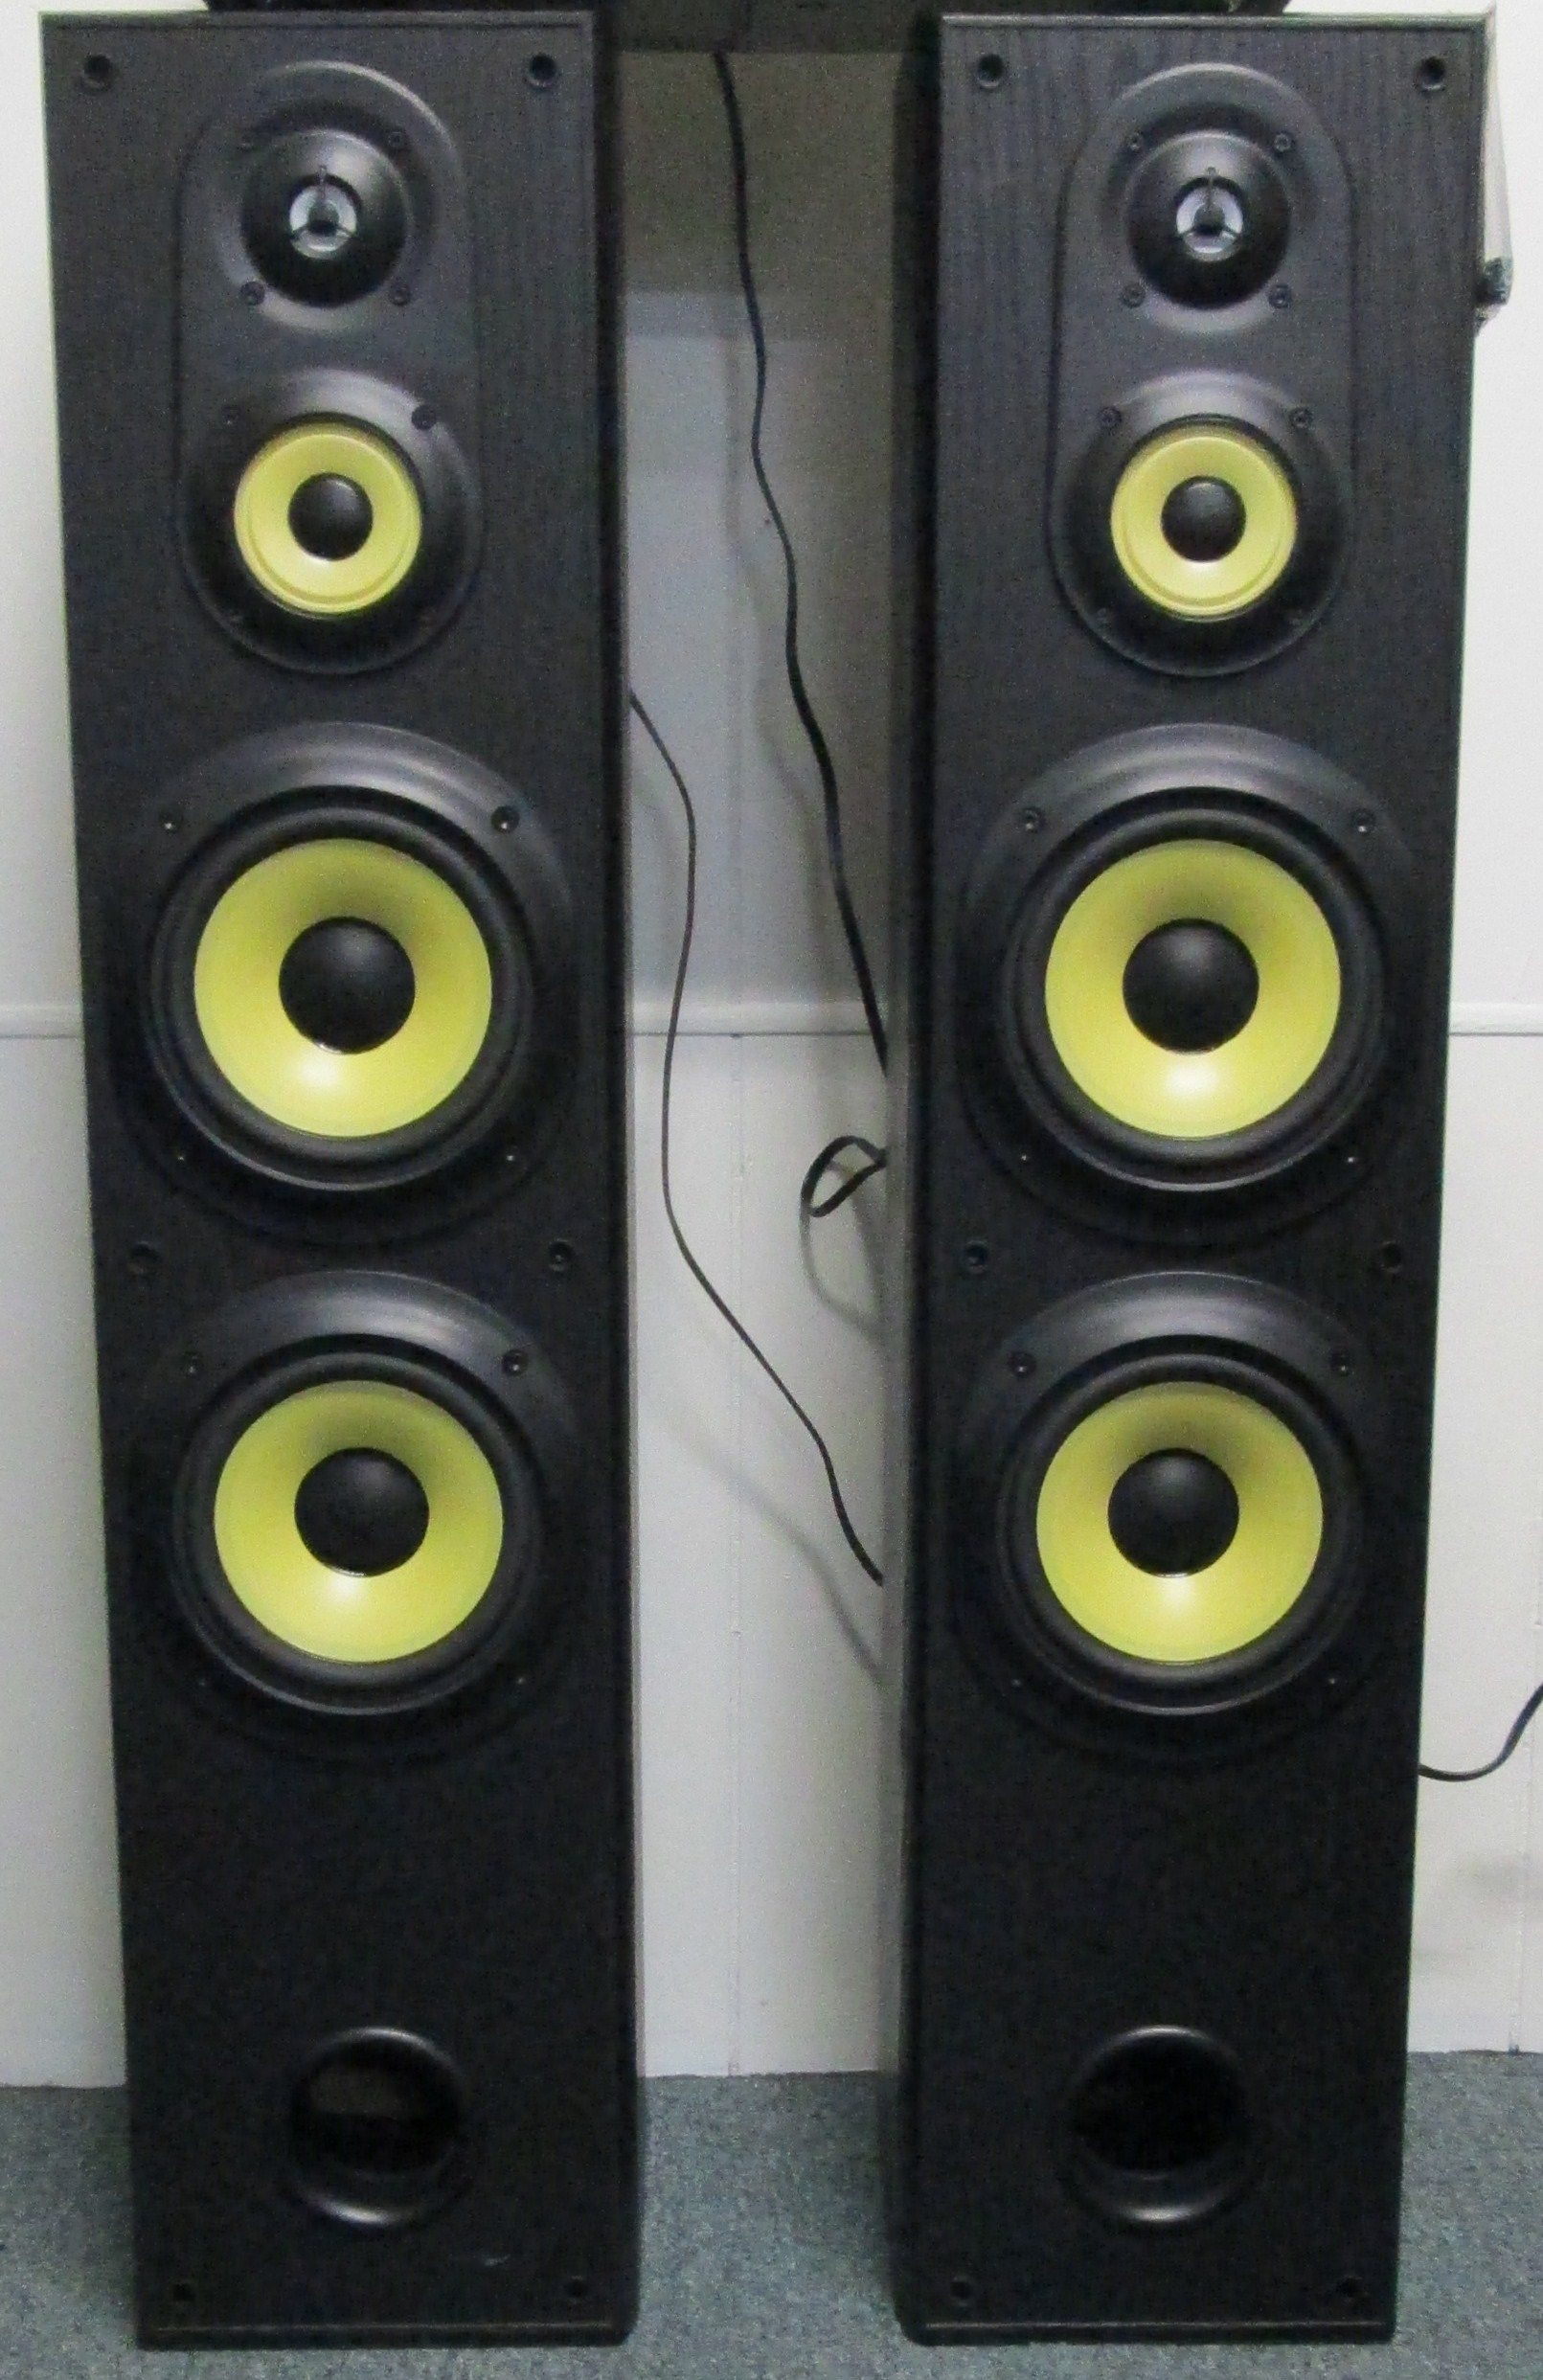 Speaker Repair is one of our specialty services  Here are